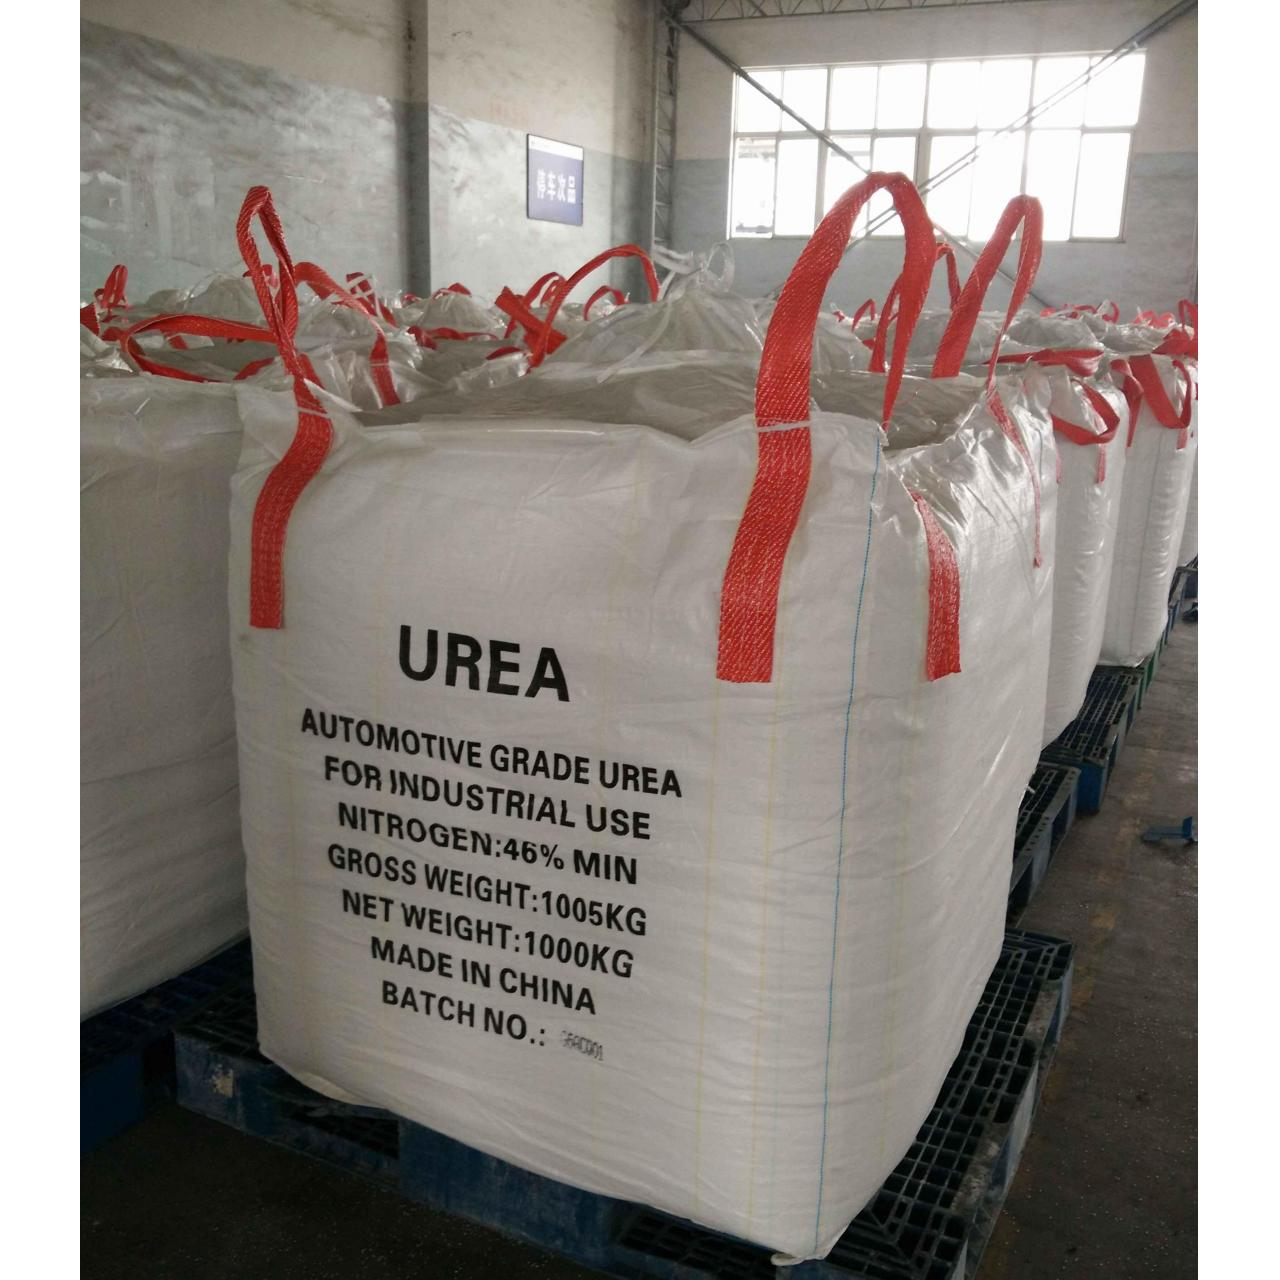 Automotive Grade Urea